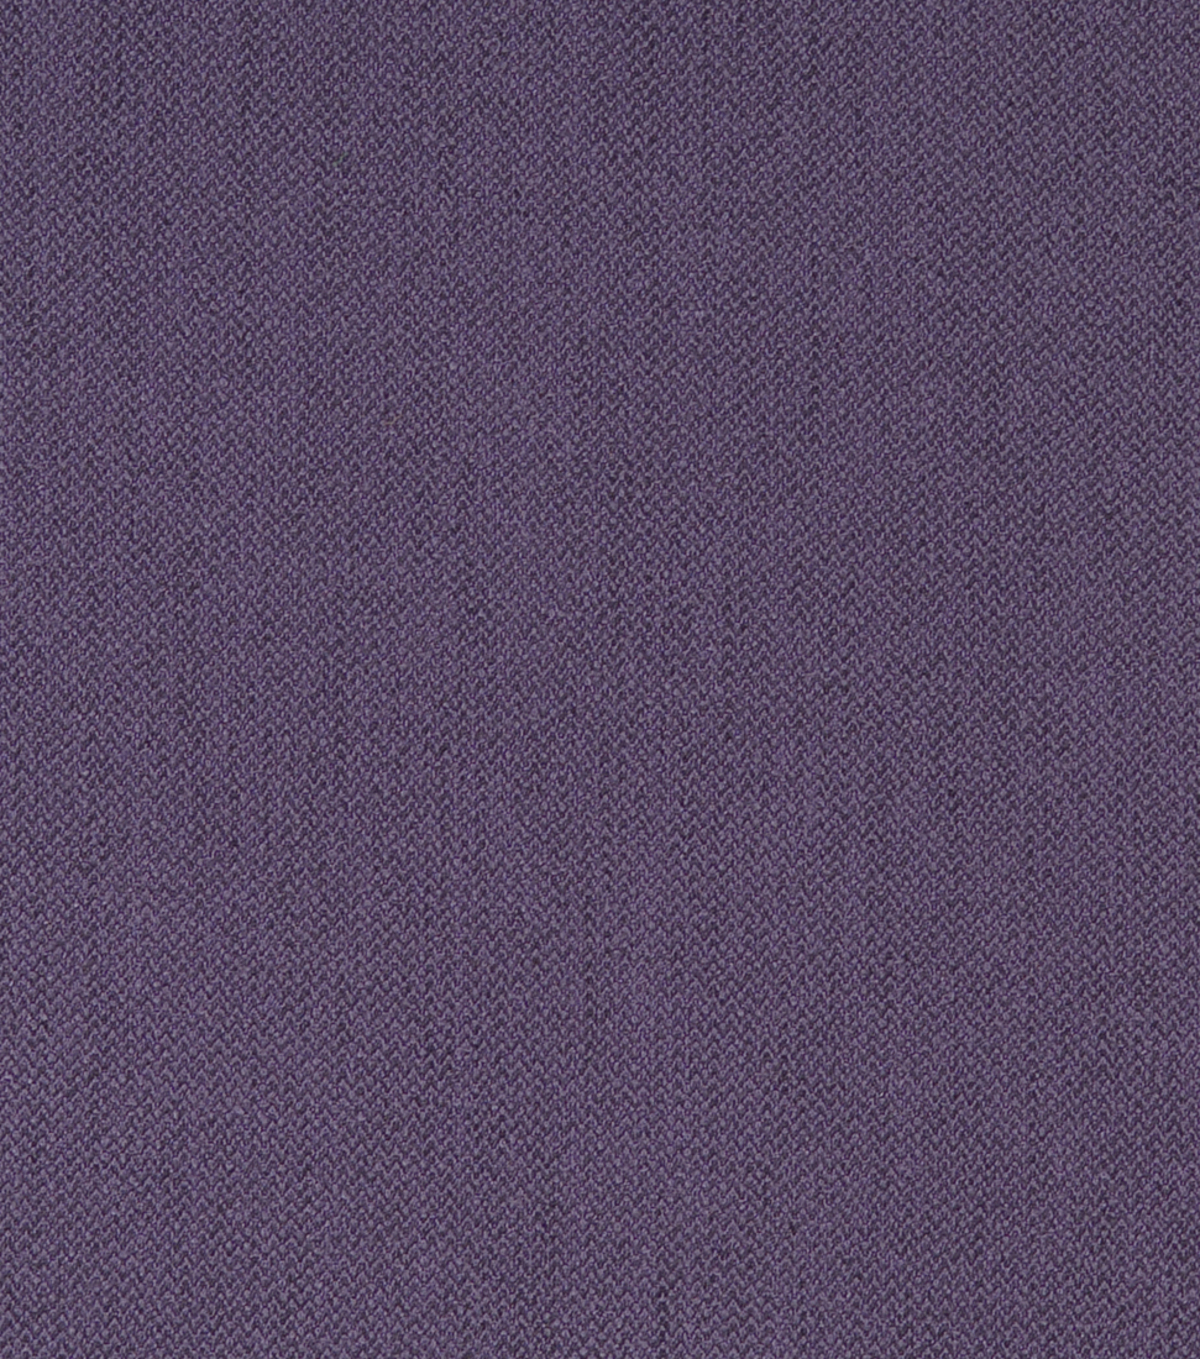 Home Decor 8\u0022x8\u0022 Fabric Swatch-Crypton Herringbone  Purple Martin